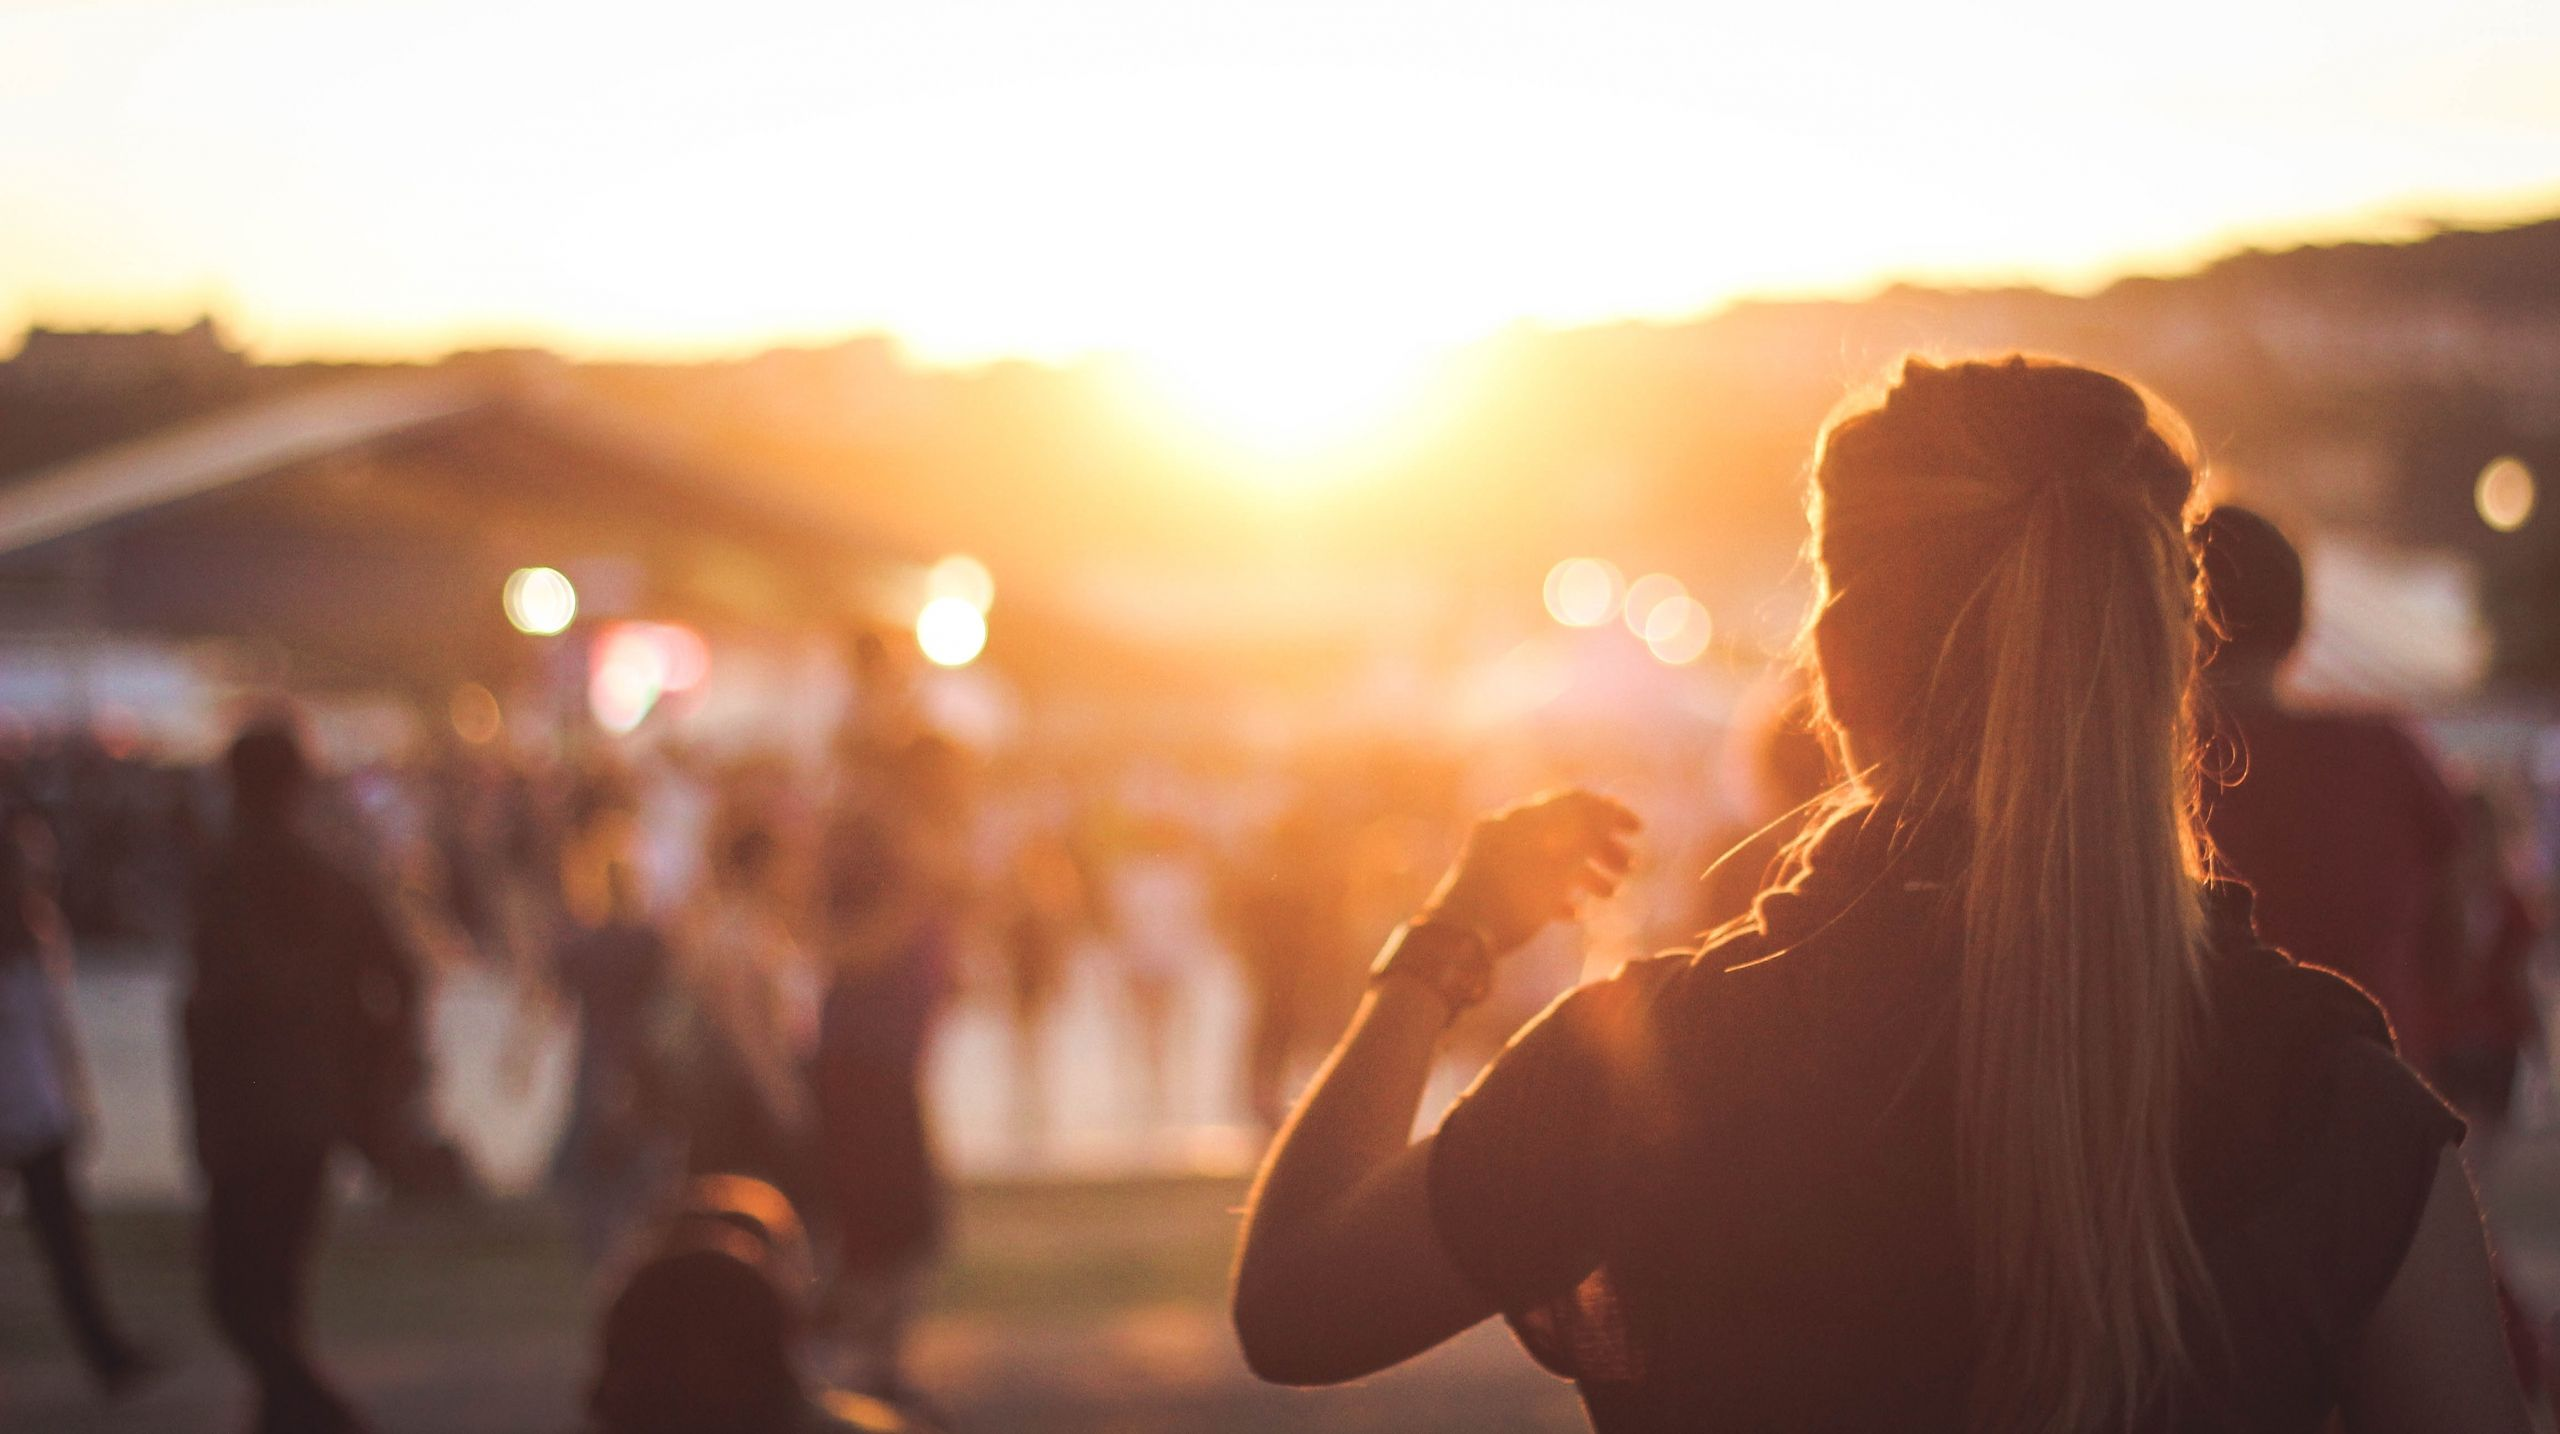 Person Enjoying Music Event with Sunset in background